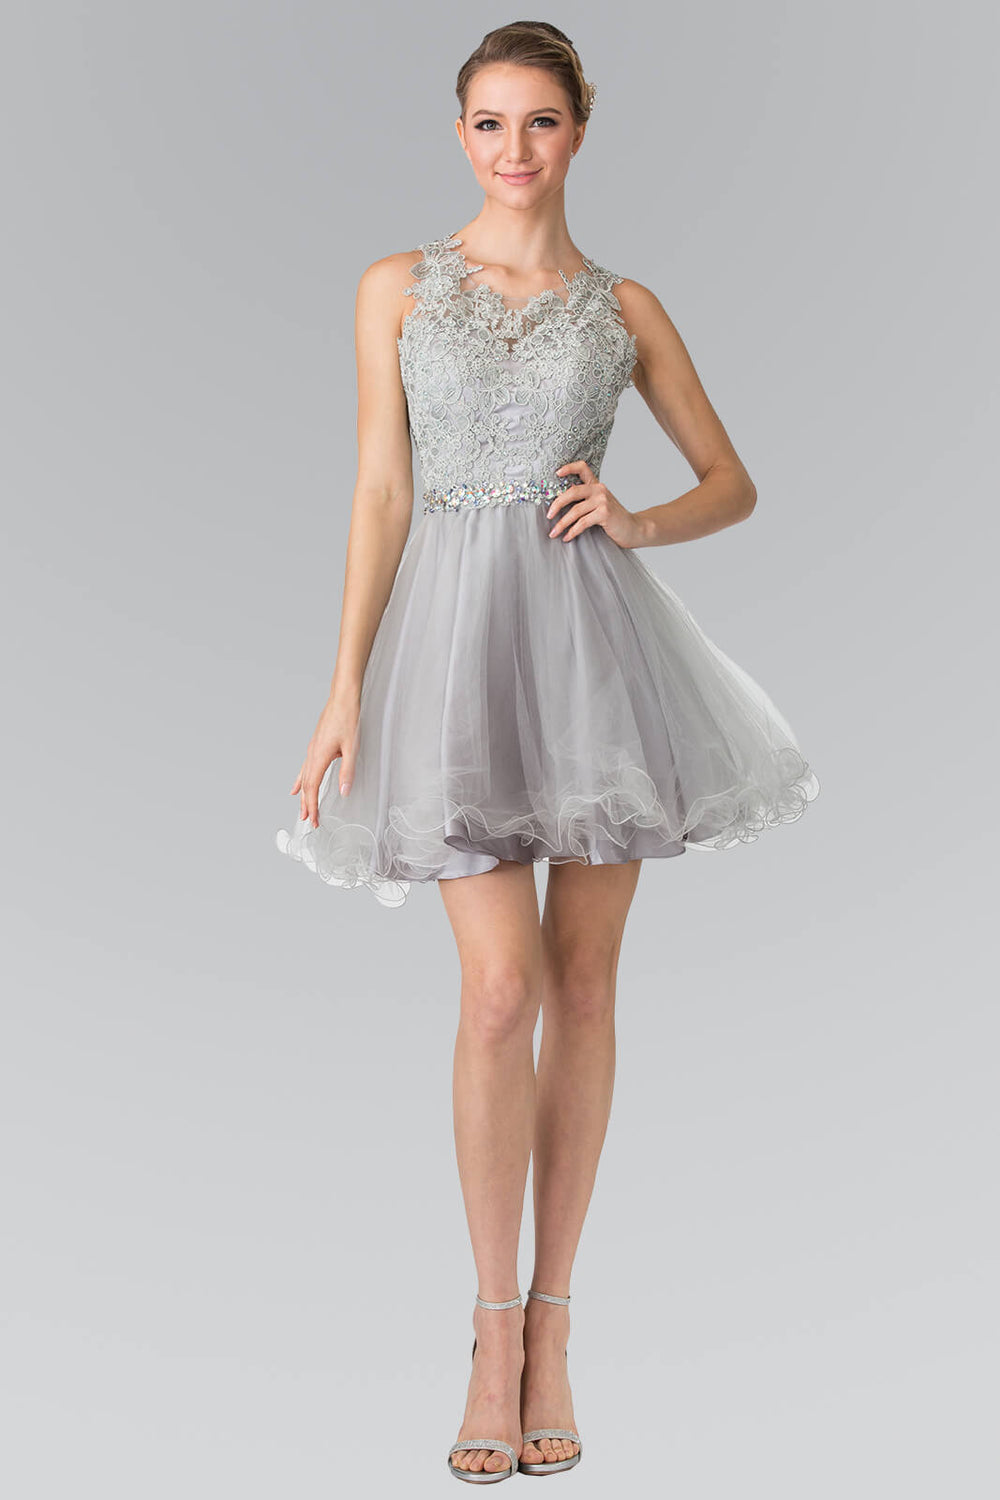 Sleeveless Prom Short Dress Homecoming - The Dress Outlet Silver